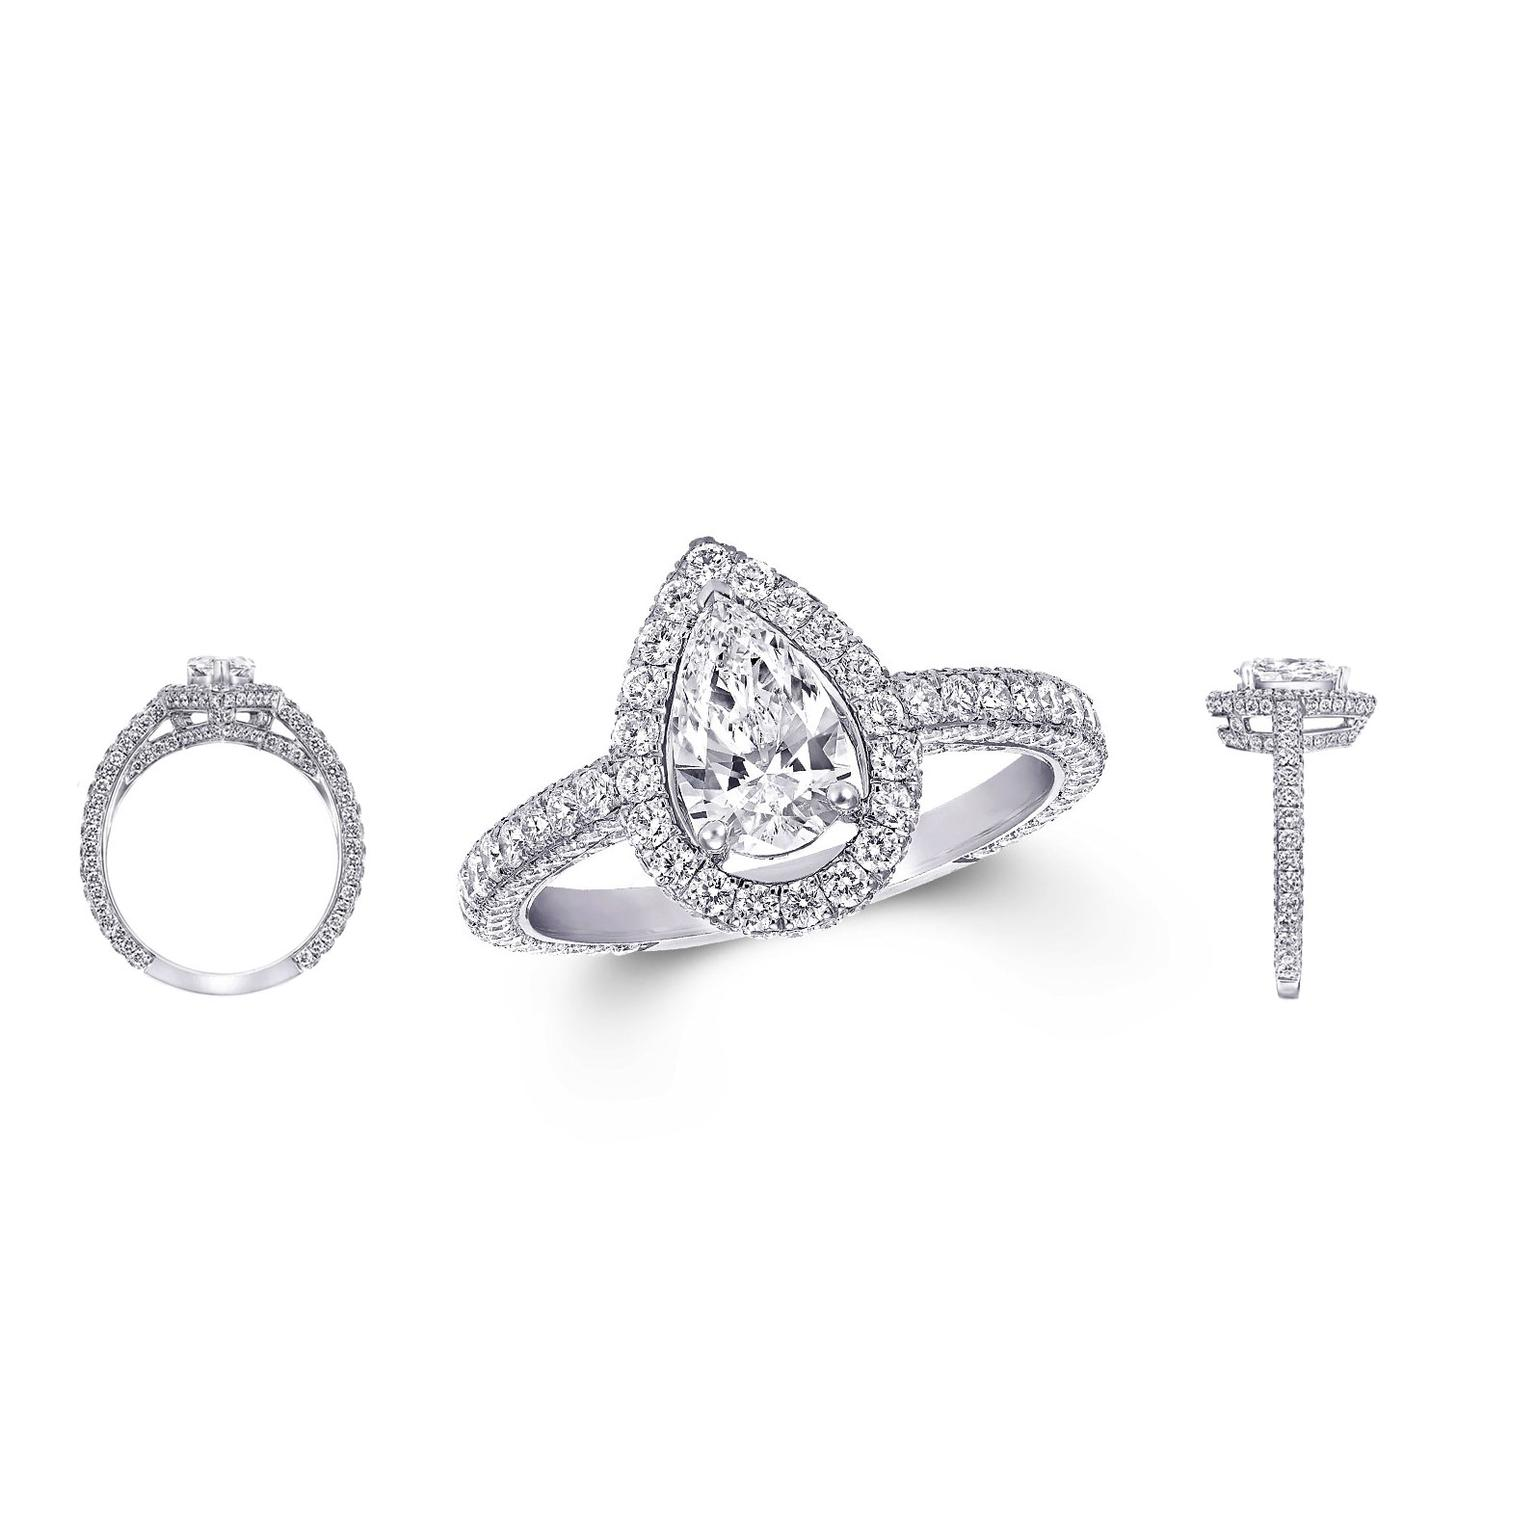 bridal diamond choice engagement stylish co gaining popularity love eshop engagementrings with cut rings remain your banners gabriel style are but remarkable a distinctively vintage pear today shaped commemorate